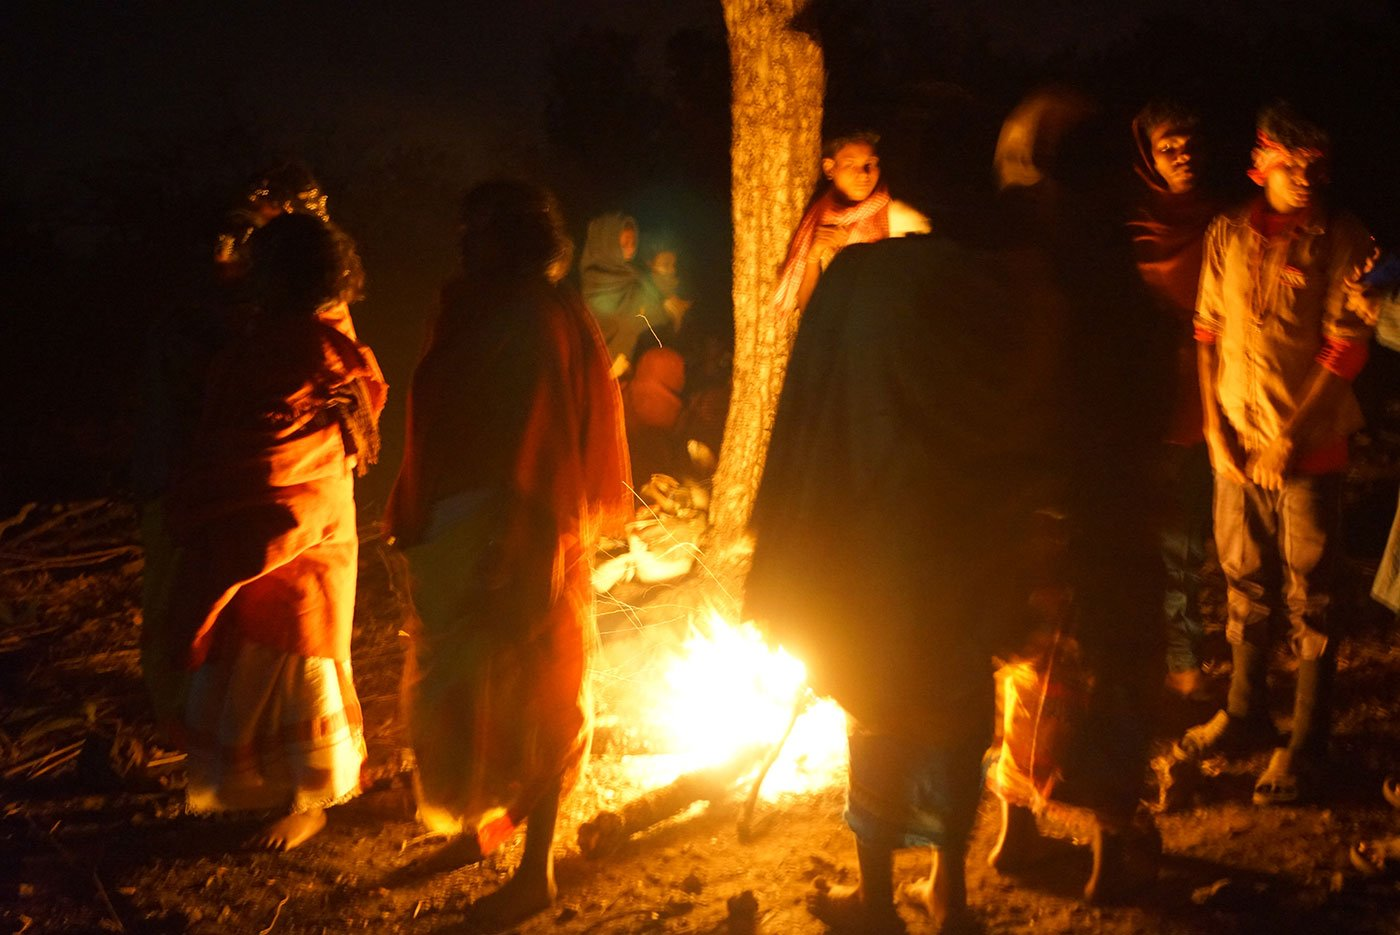 Tribals standing around a campfire at night